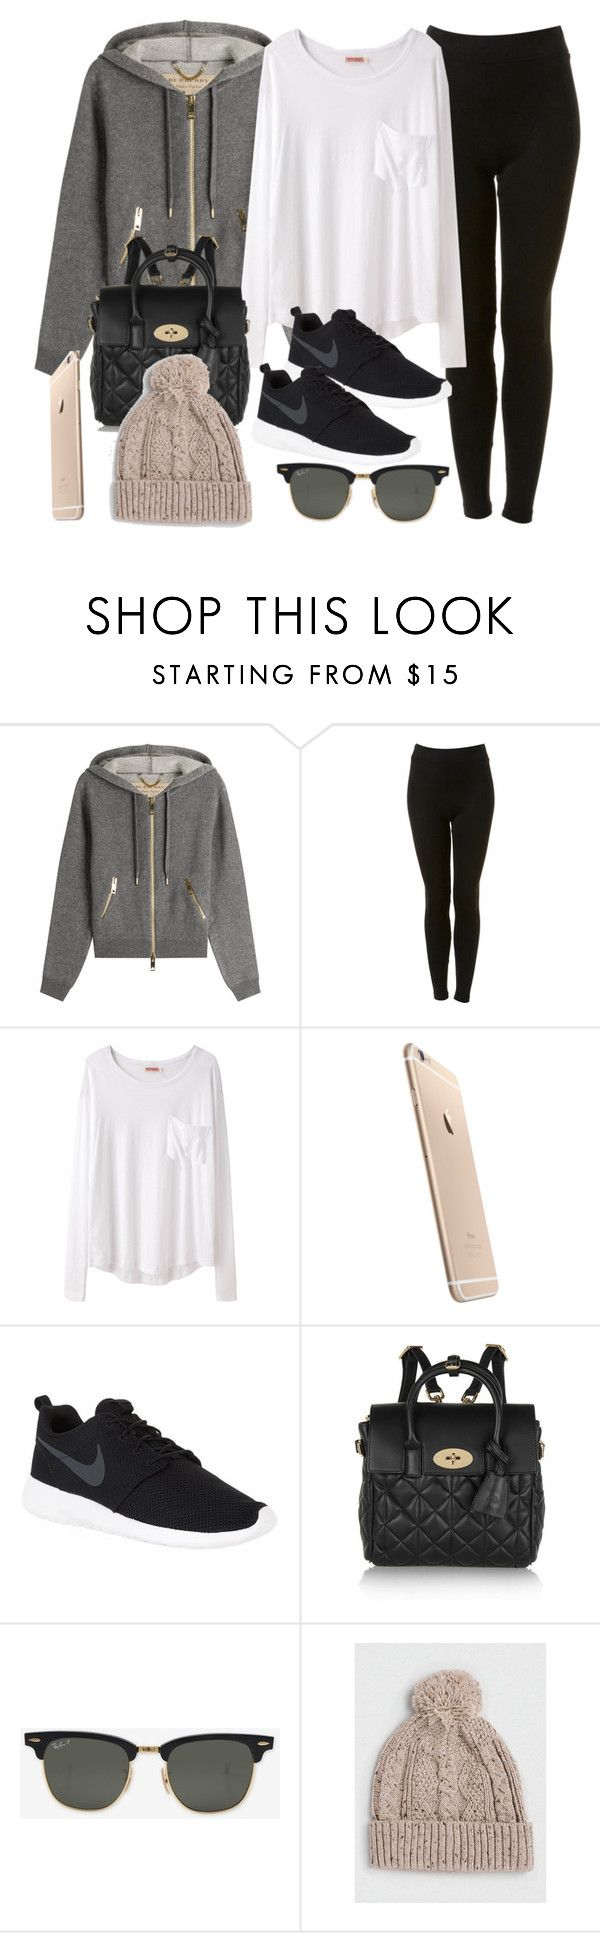 """""""Style #11560"""" by vany-alvarado ❤ liked on Polyvore featuring Burberry, Topshop, Organic by John Patrick, NIKE, Mulberry, Ray-Ban and Topman"""